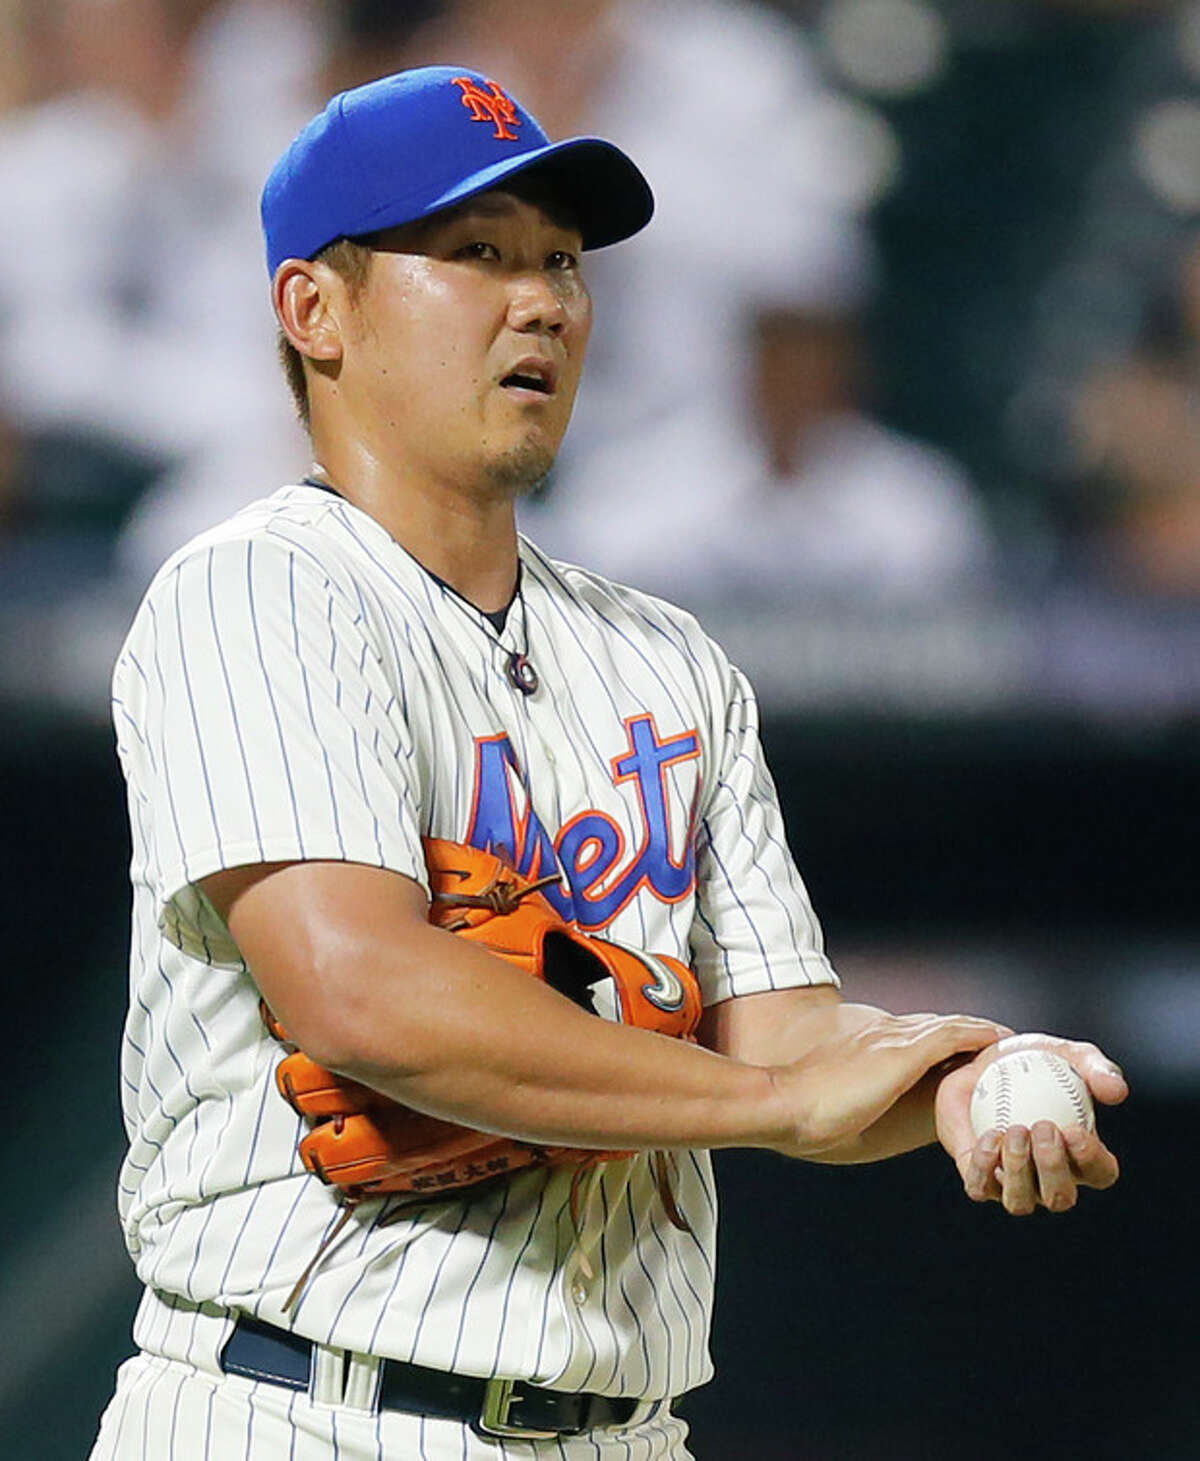 New York Mets starting pitcher Daisuke Matsuzaka (16) reacts after giving up a double to Philadelphia Phillies' Michael Young in the fifth inning of a baseball game at Citi Field in New York, Wednesday, Aug. 28, 2013. (AP Photo/Paul J. Bereswill)